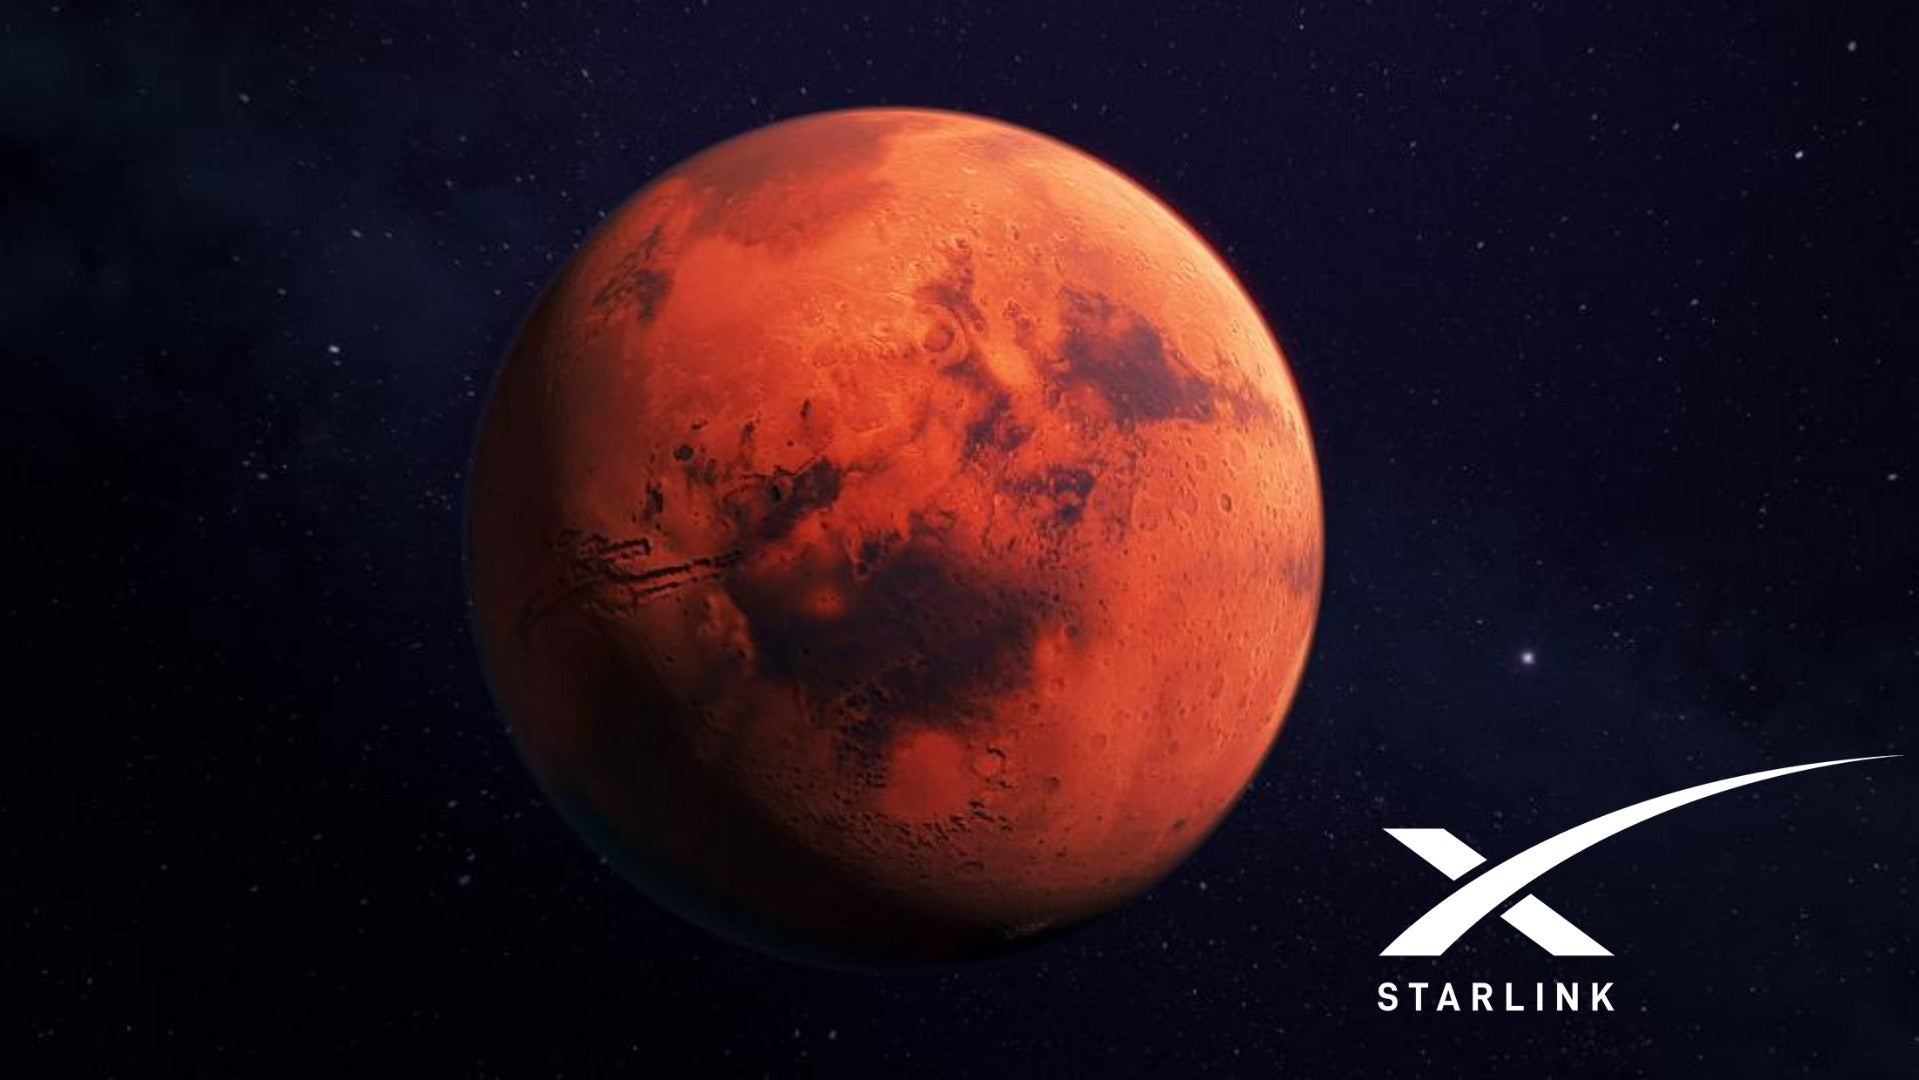 SpaceX plans to provide Starlink internet on Mars one day